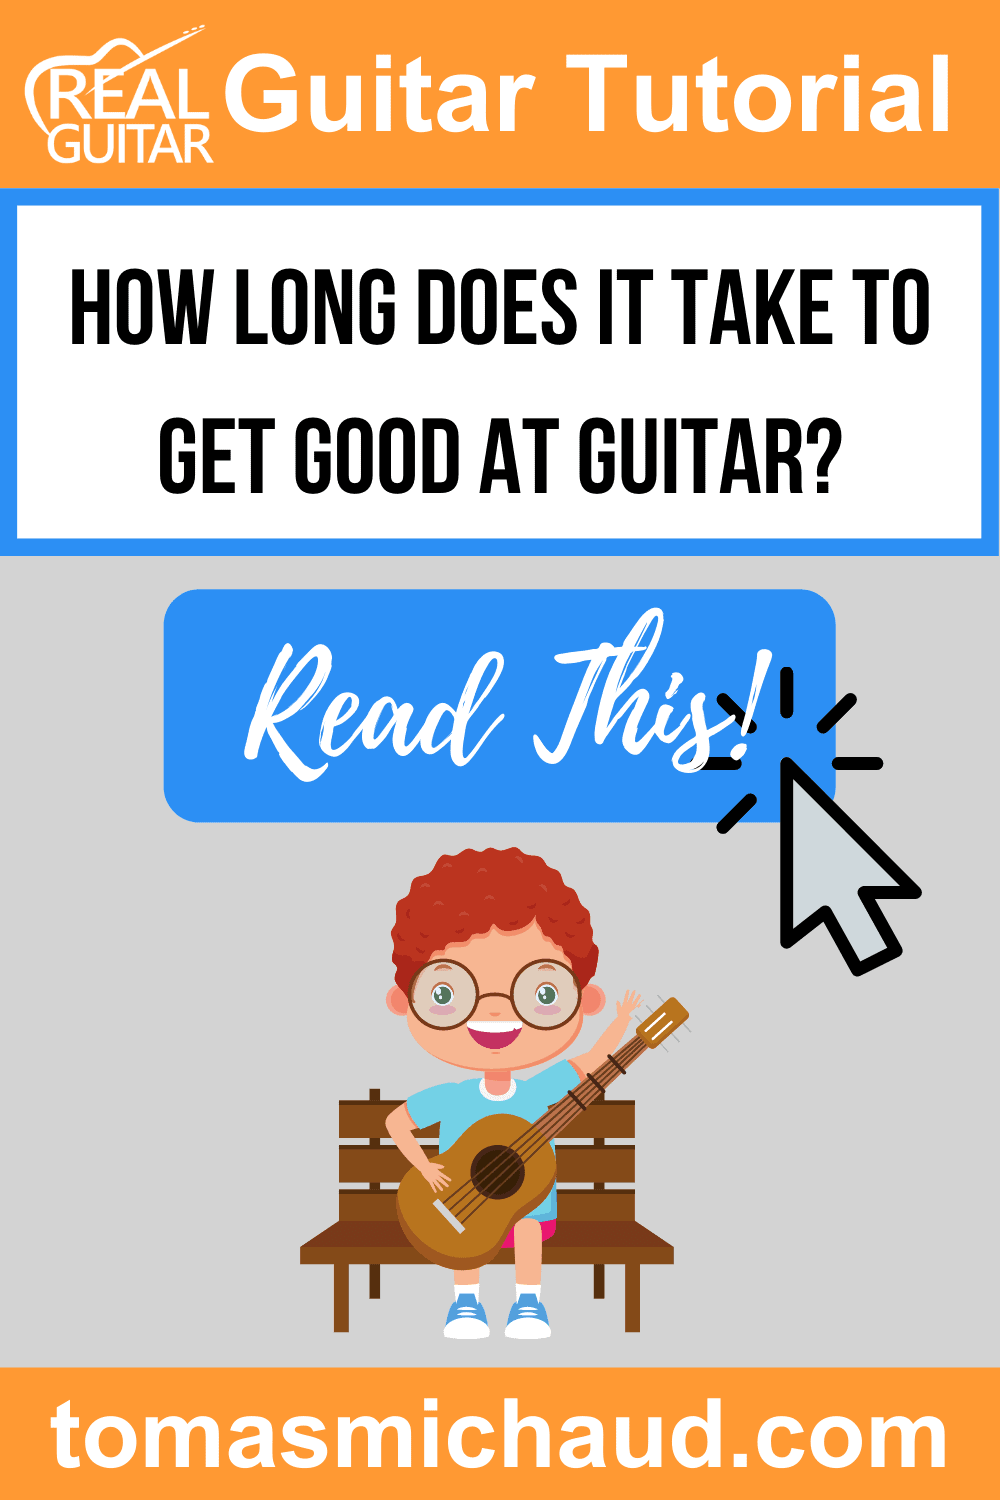 How Long Does It Take To Get Good At Guitar